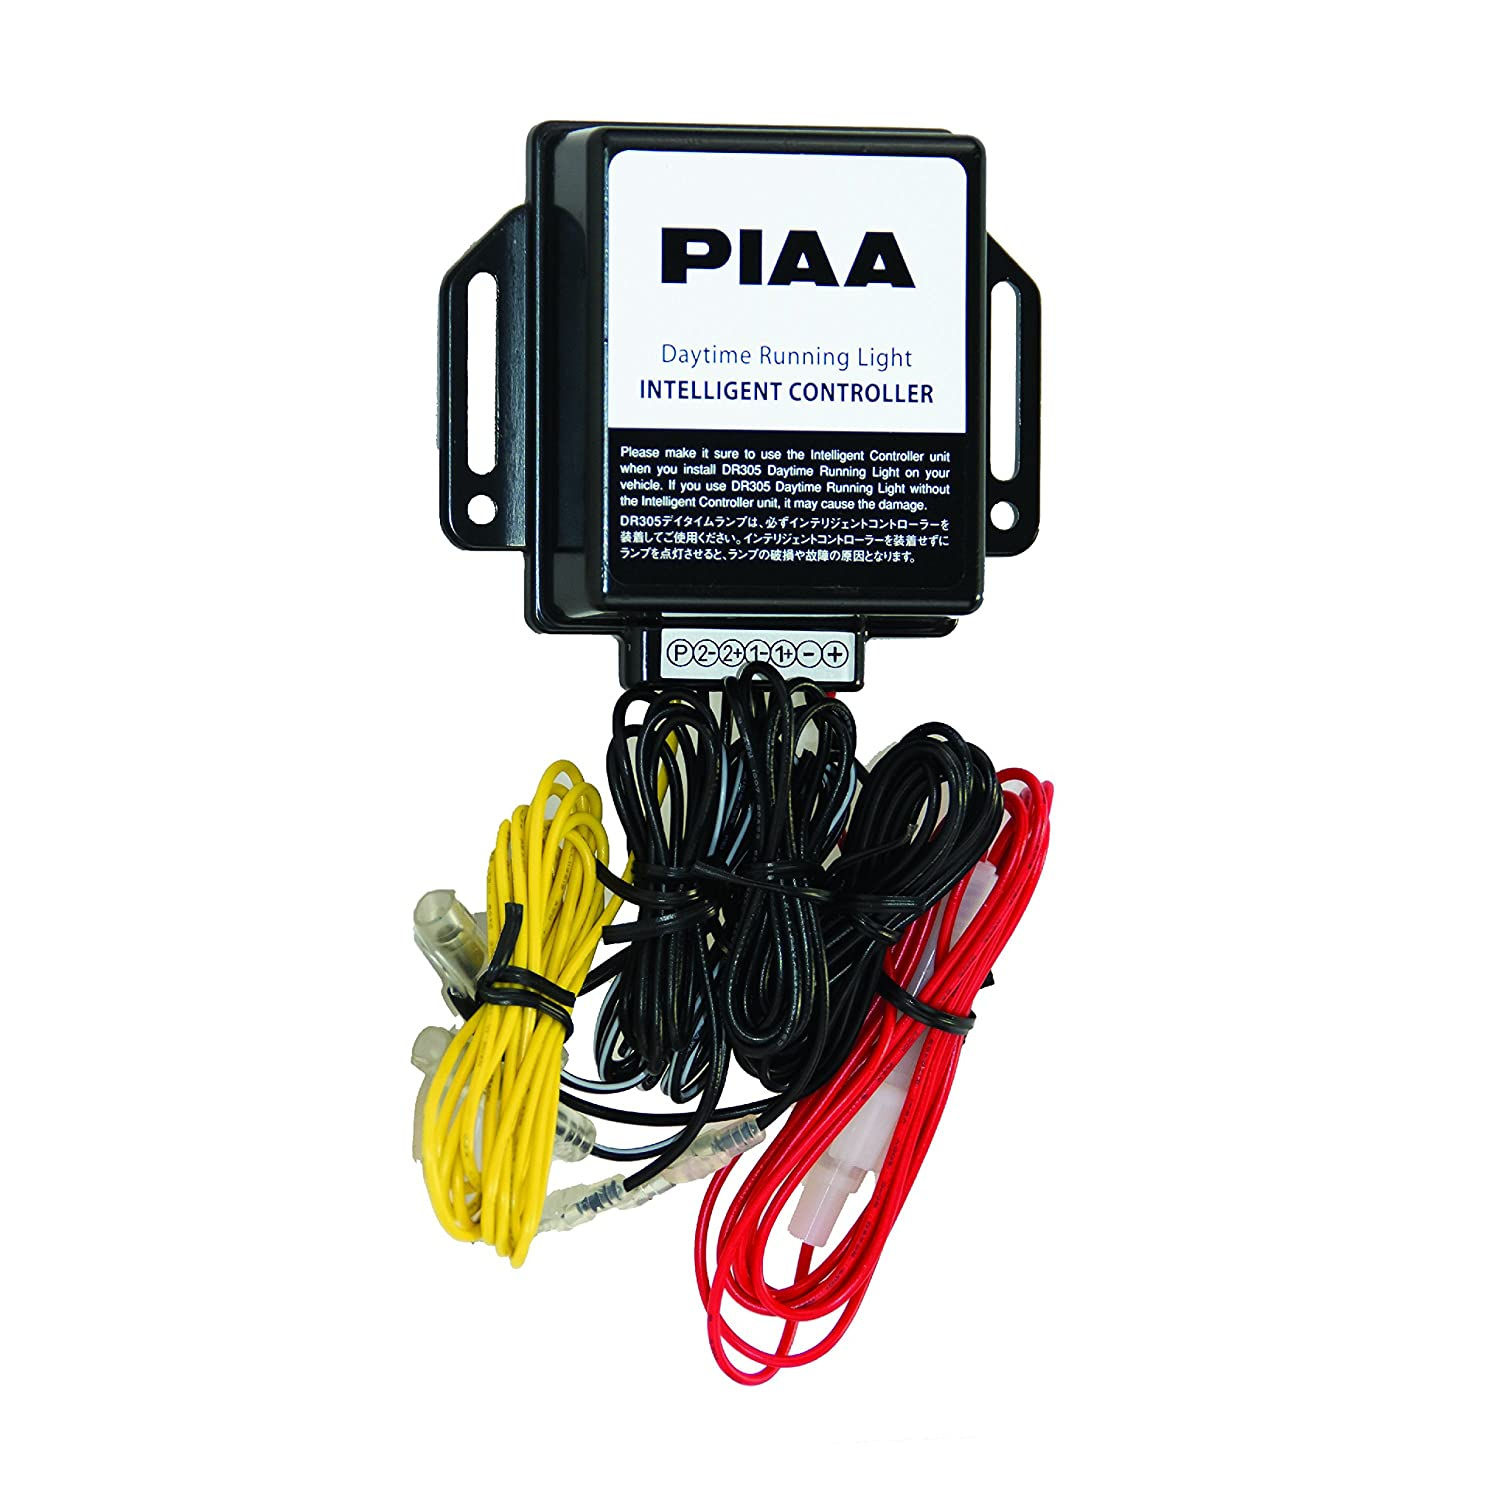 Amazon.com: PIAA 34305 Wiring Harness for DR305 DRL Light Kit ... on radio harness, pet harness, obd0 to obd1 conversion harness, battery harness, pony harness, alpine stereo harness, fall protection harness, cable harness, swing harness, safety harness, electrical harness, maxi-seal harness, suspension harness, engine harness, nakamichi harness, dog harness, amp bypass harness, oxygen sensor extension harness,